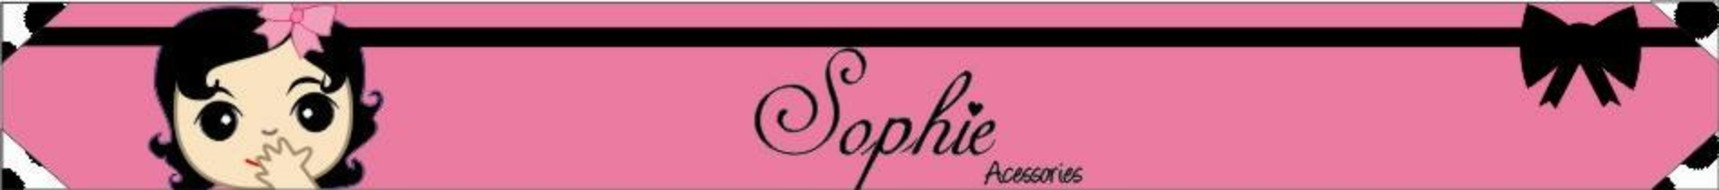 Sophie Accessories